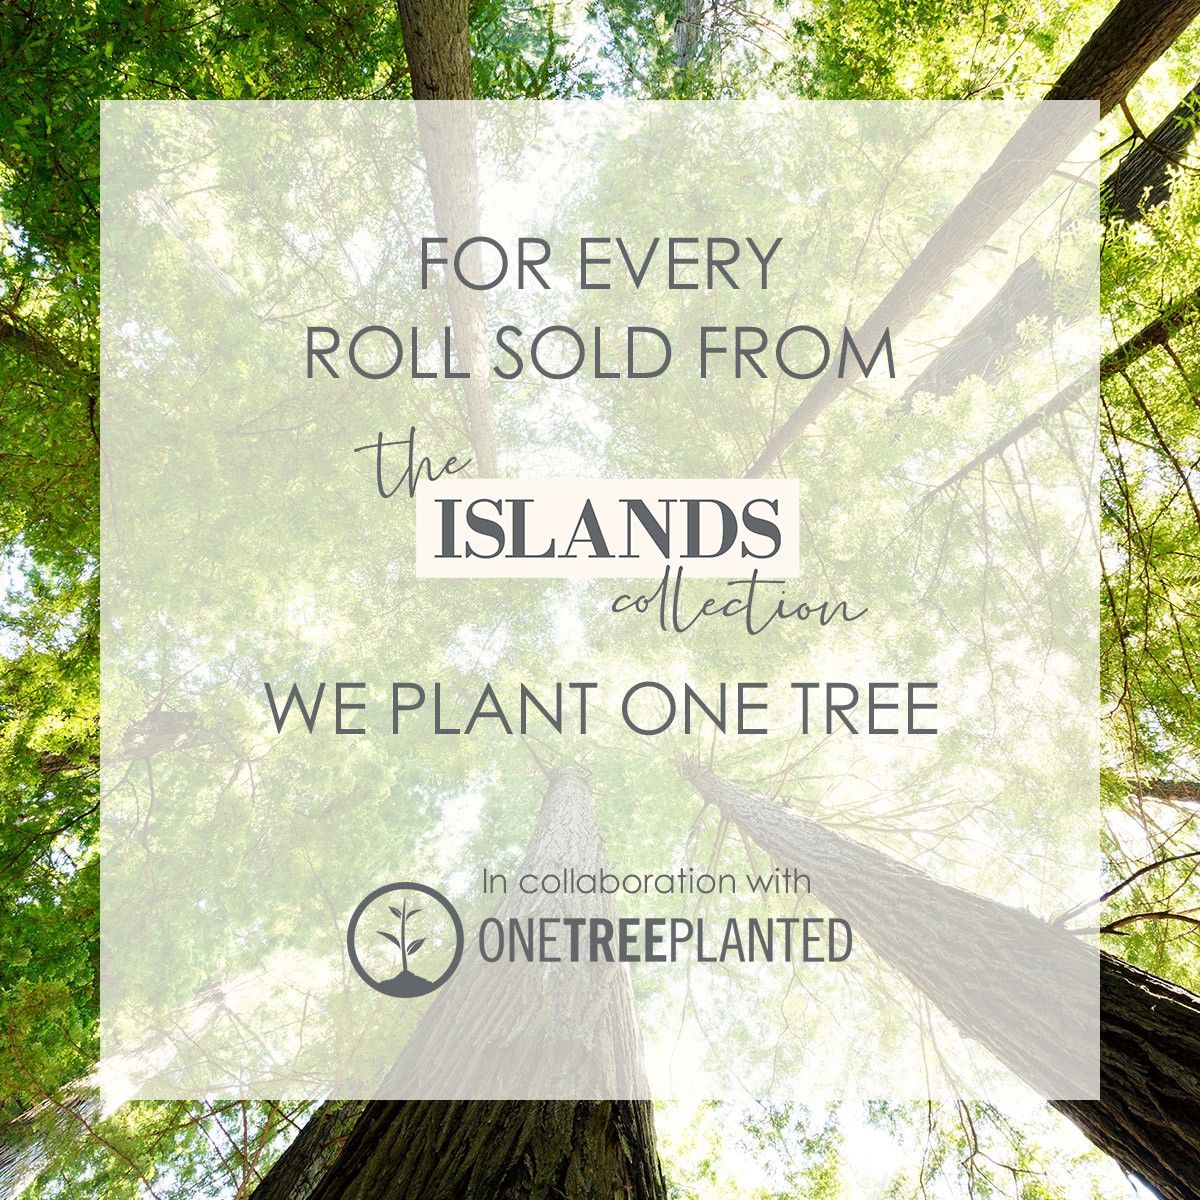 Image showing that for every roll sold from The Islands collection we will plant one tree.